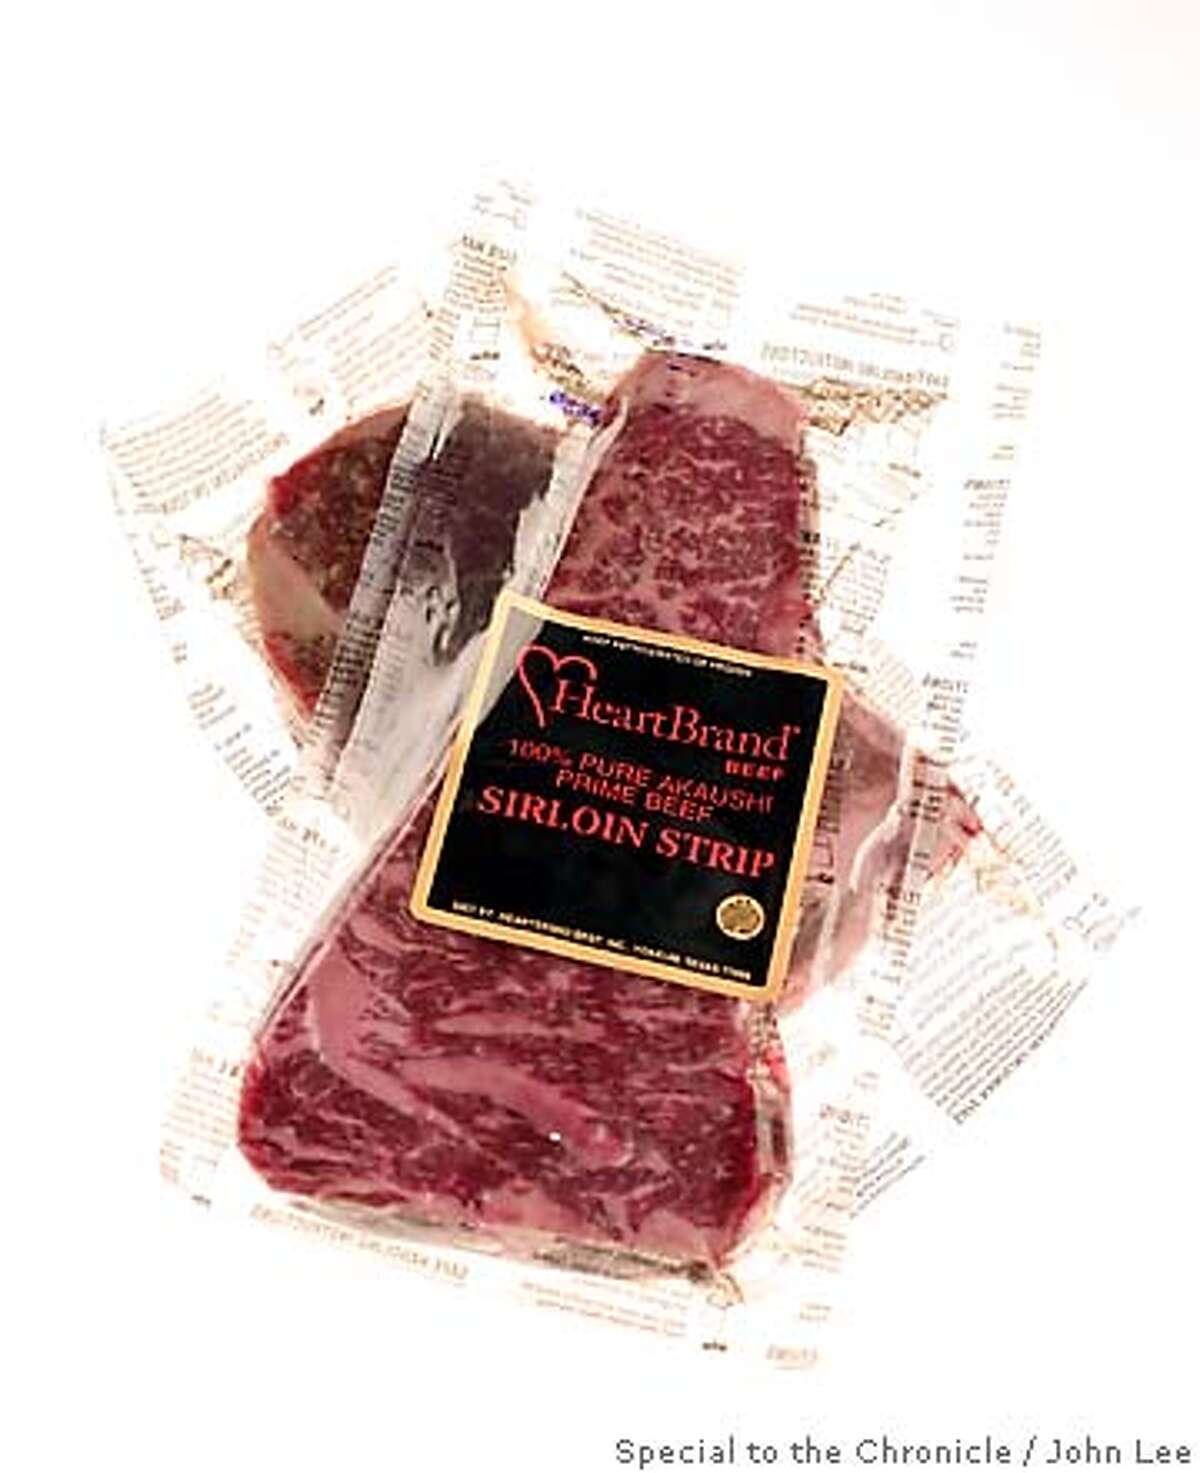 WHATS22_03JOHNLEE.JPG Heart Brand Beef Akaushi steaks. By JOHN LEE/SPECIAL TO THE CHRONICLE